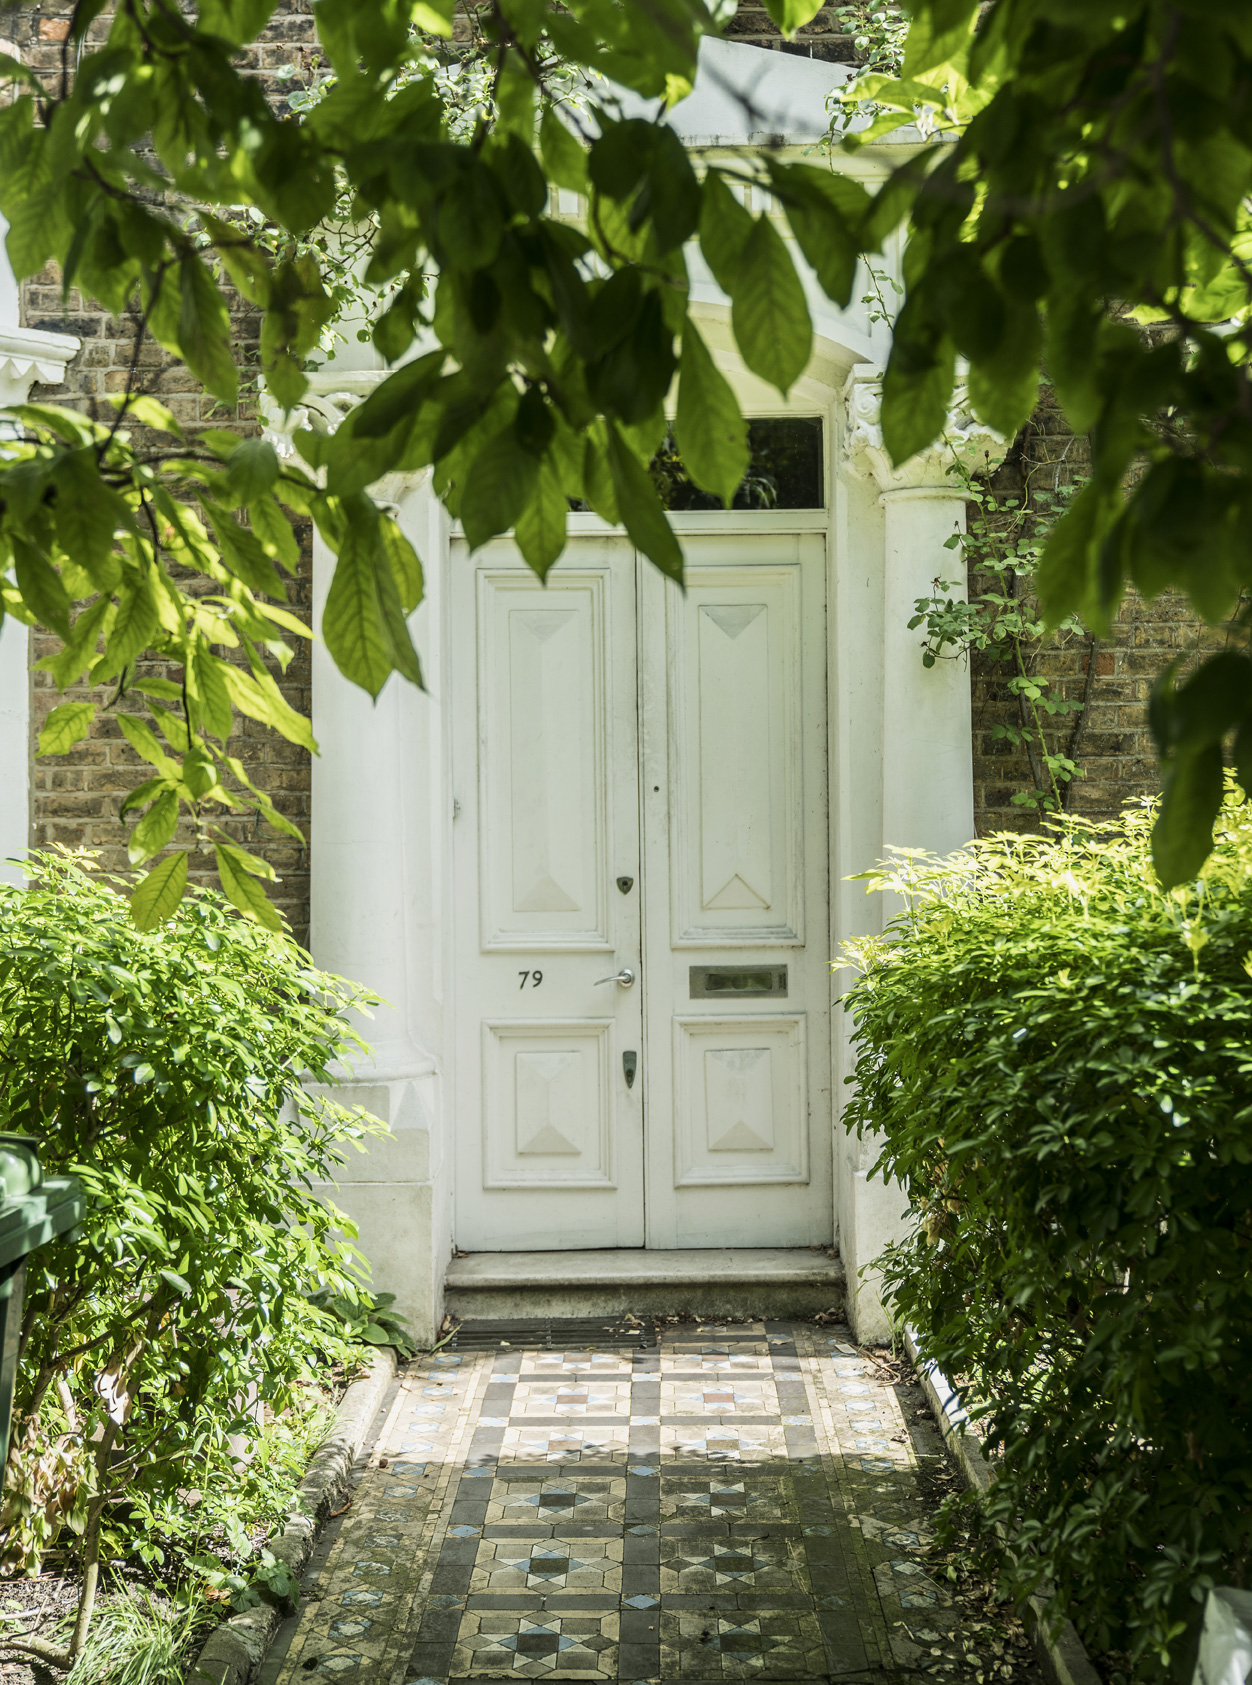 An effortlessly chic white classic London double front door with Victorian tiled path.